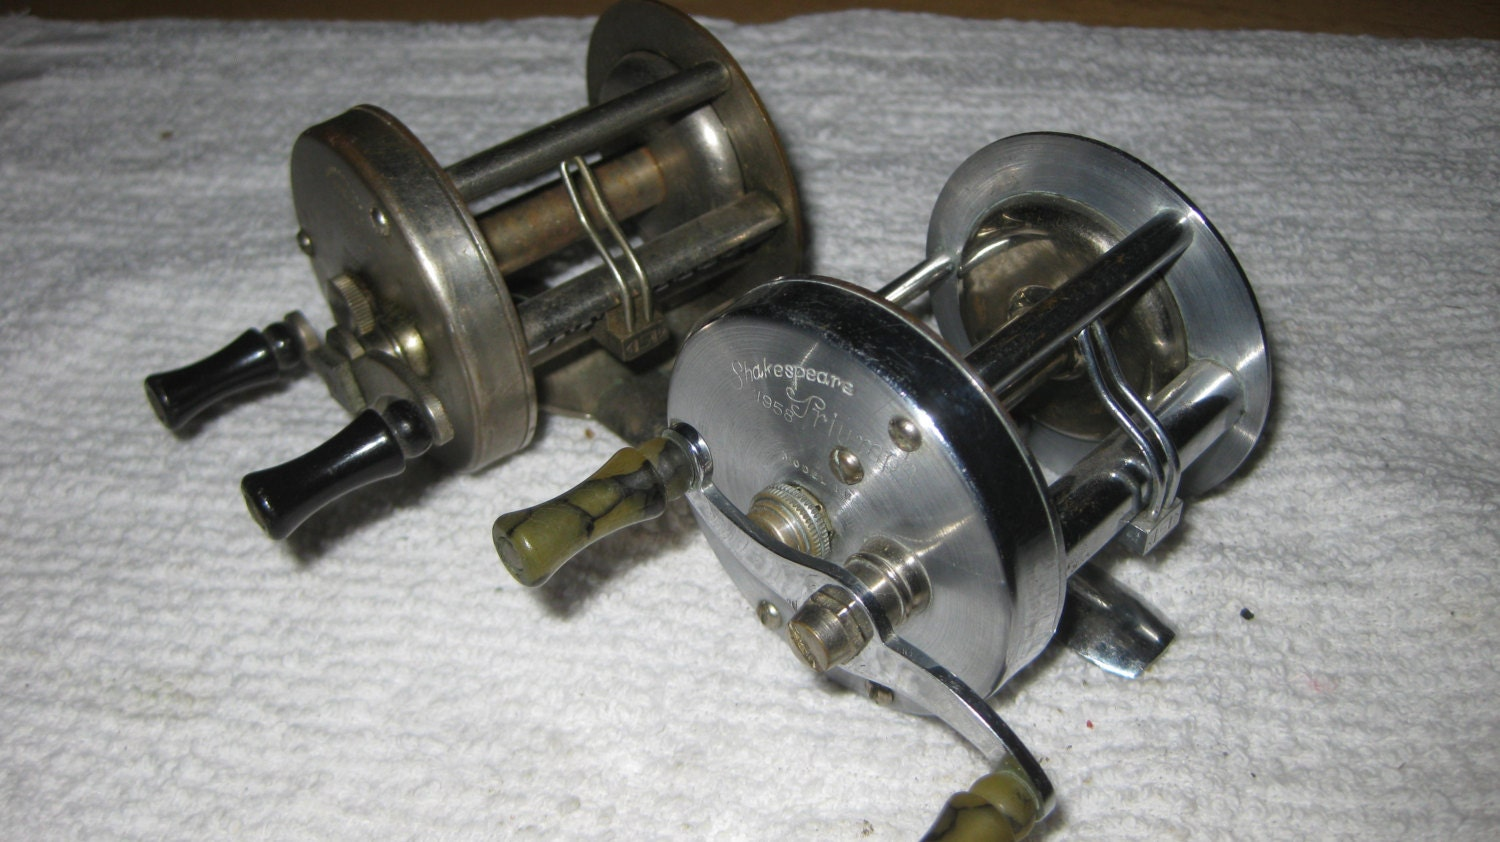 2 lot vintage shakespeare fishing reels collectiblke on sale for Vintage fishing reels for sale